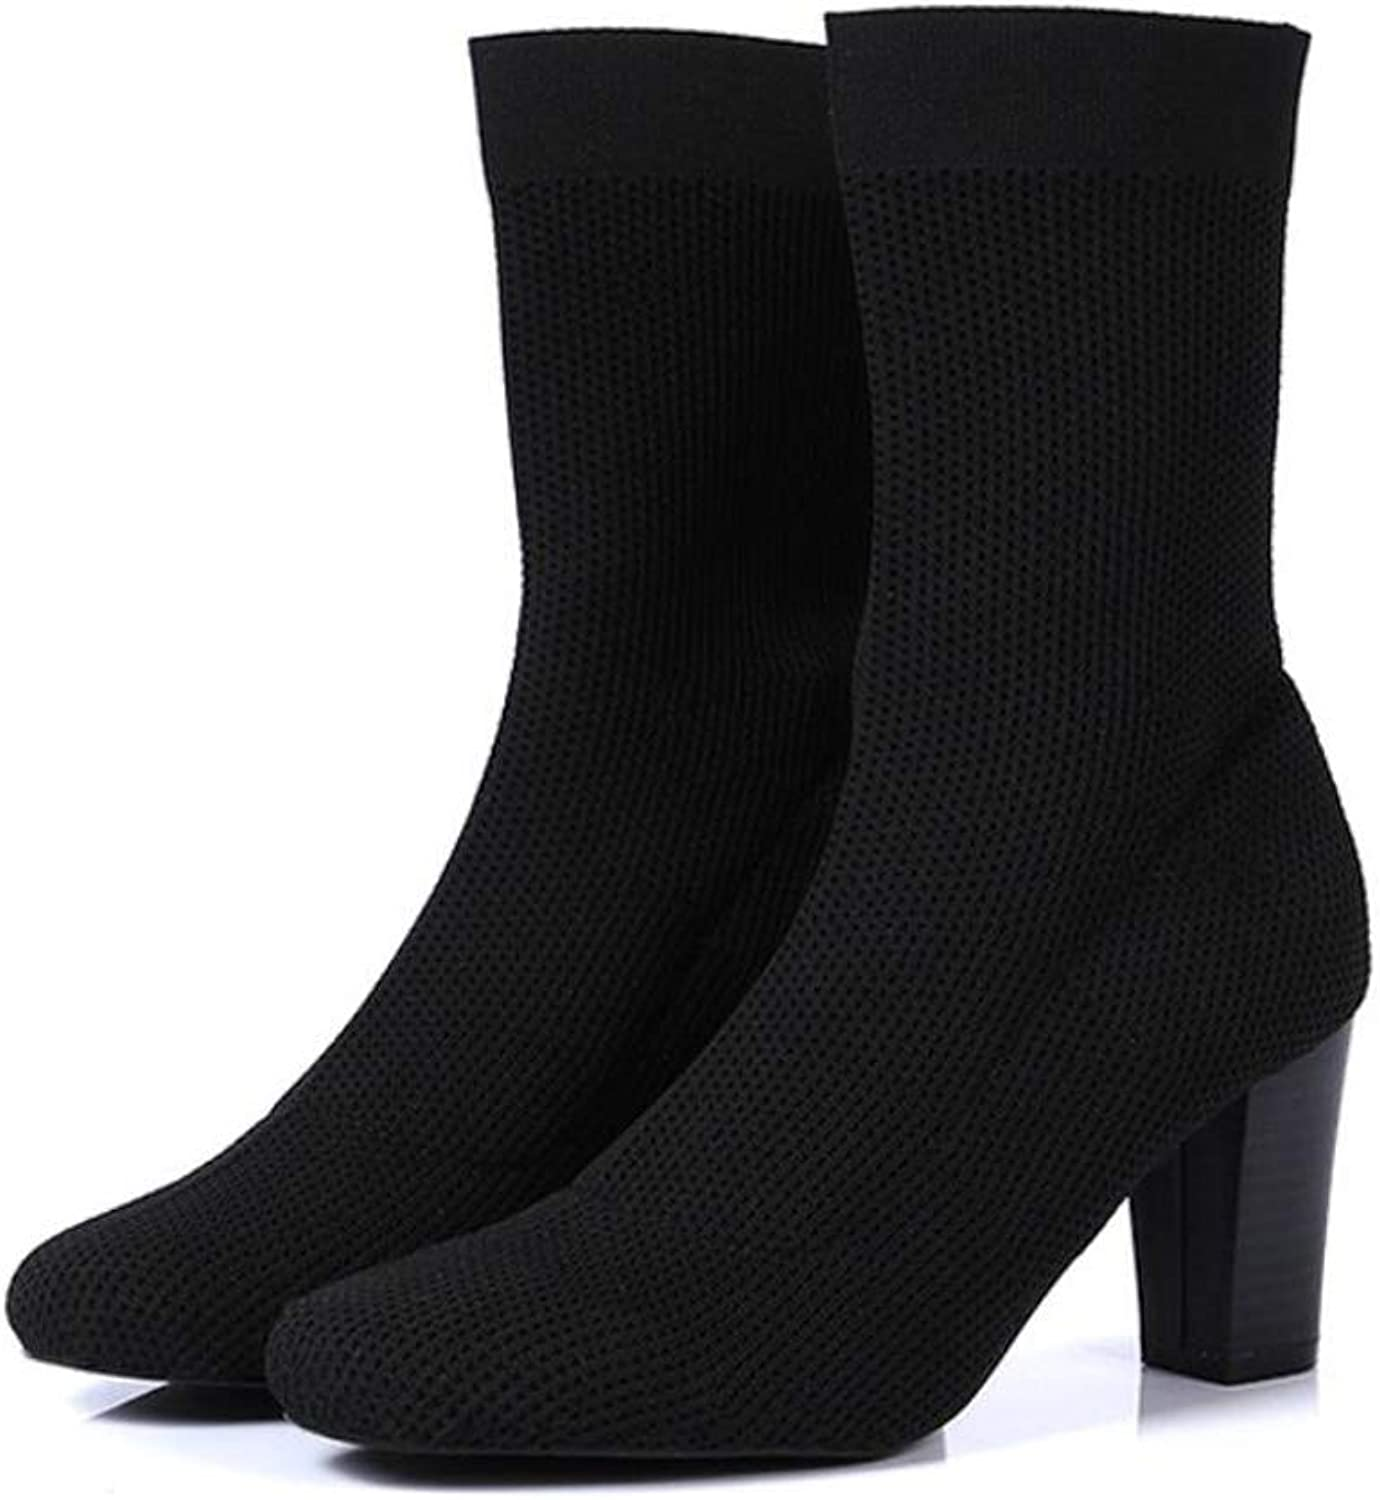 DANDANJIE Women's Boots Black High Heels Popular Pointed shoes Stretch Socks shoes Autumn